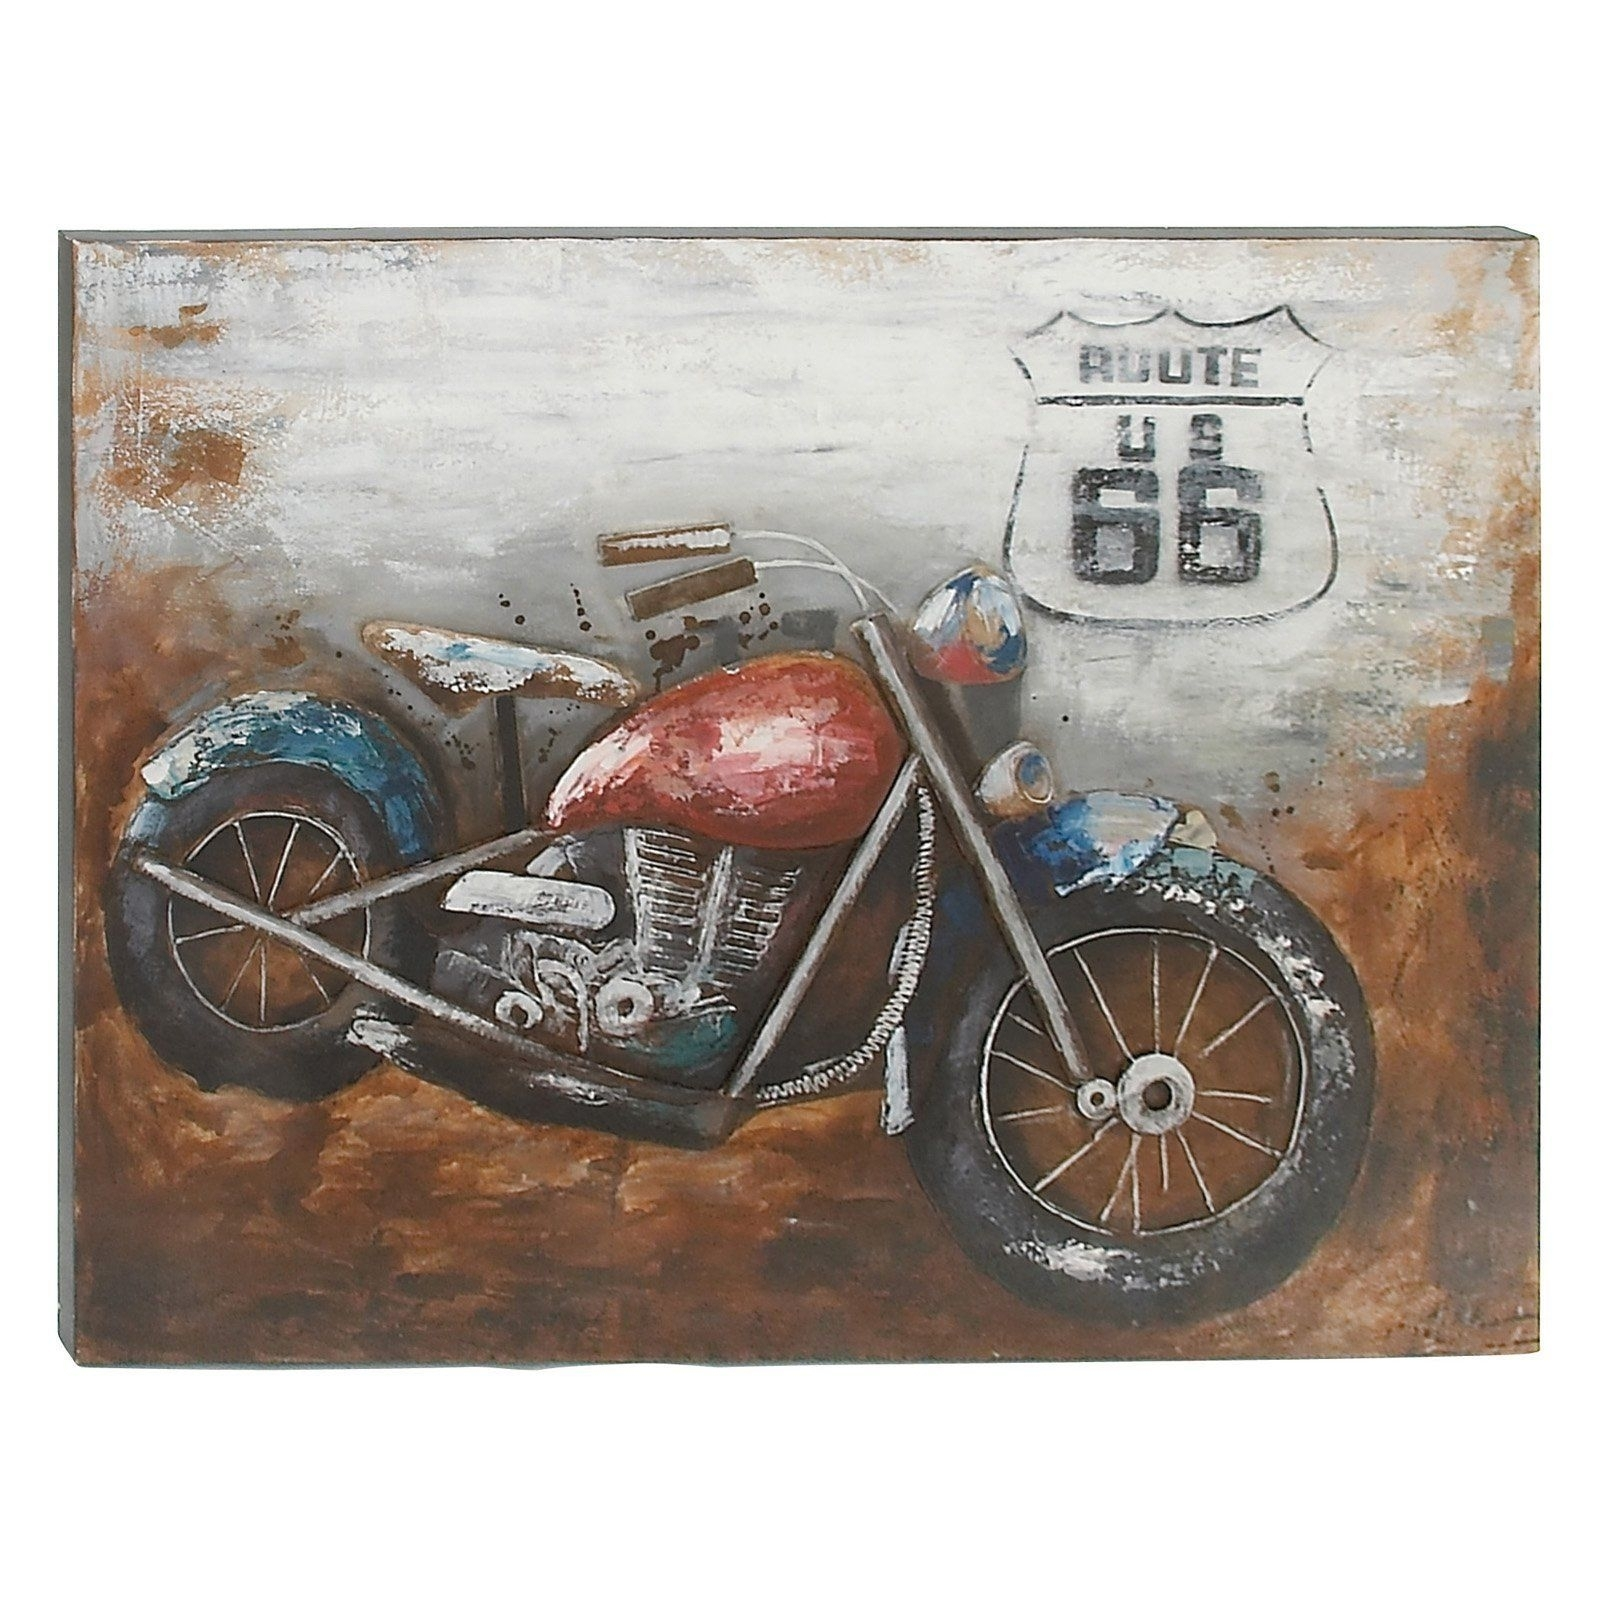 Decmode Route 66 Vintage Motorcycle Wall Art - 43943 | Products inside Motorcycle Wall Art (Image 4 of 20)